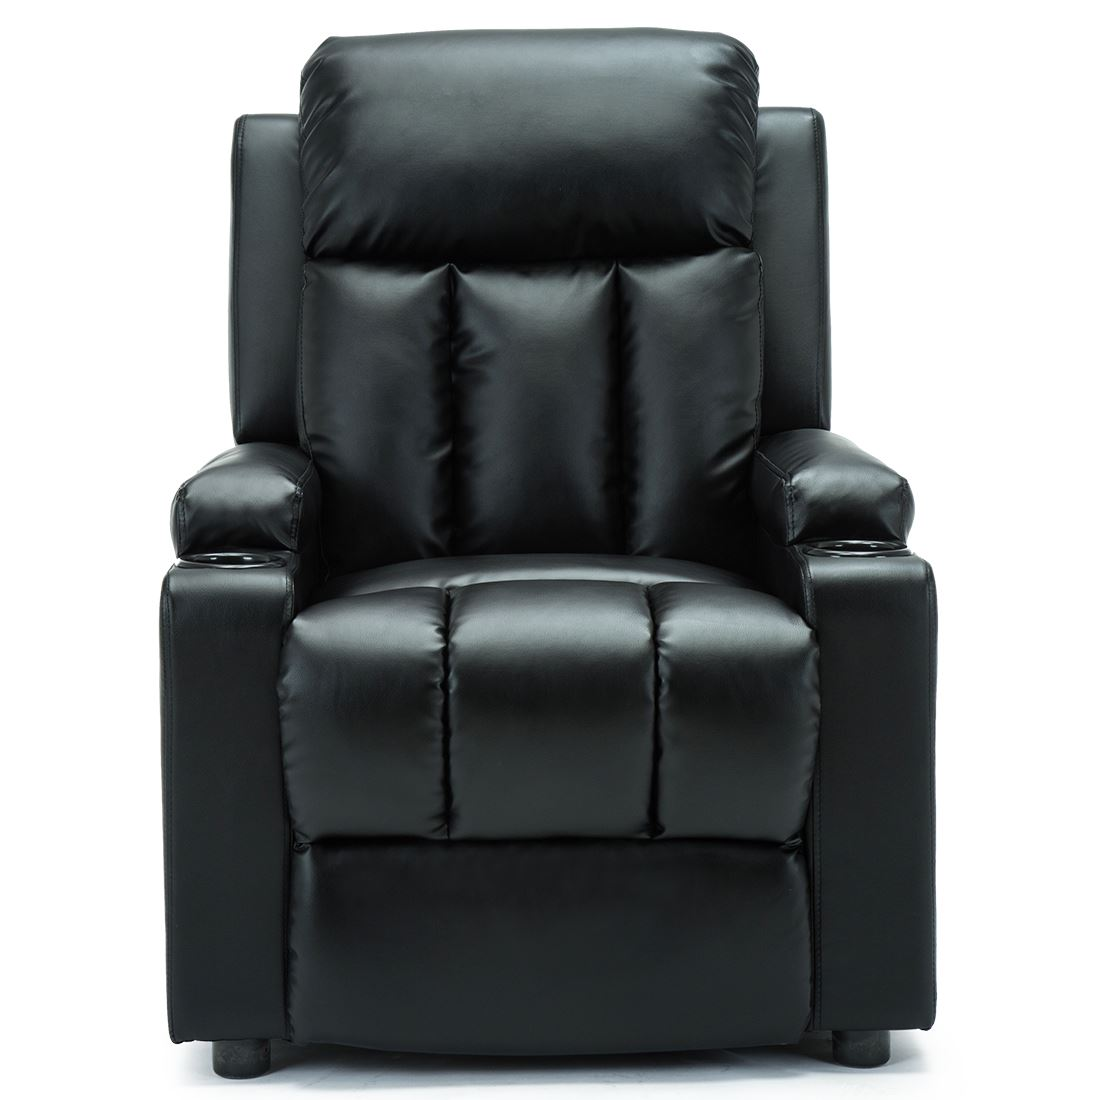 STUDIO-LEATHER-RECLINER-w-DRINK-HOLDERS-ARMCHAIR-SOFA-CHAIR-CINEMA-GAMING thumbnail 10